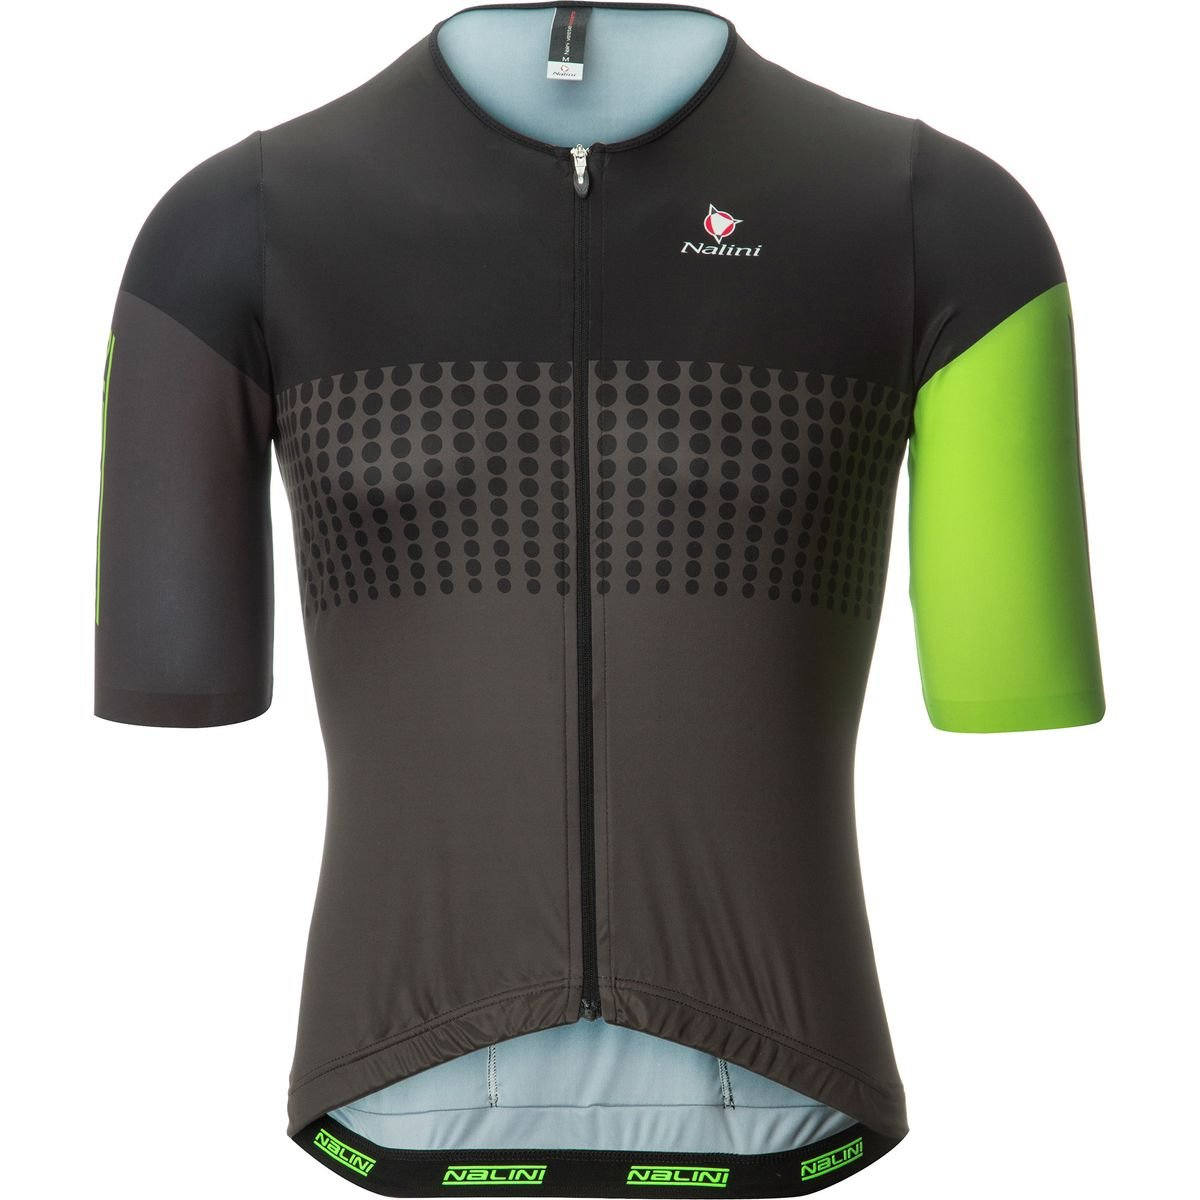 Nalini Velodromo Jersey – 半袖 – メンズ B0725YPQCJ Large|Black/Flo Green Black/Flo Green Large